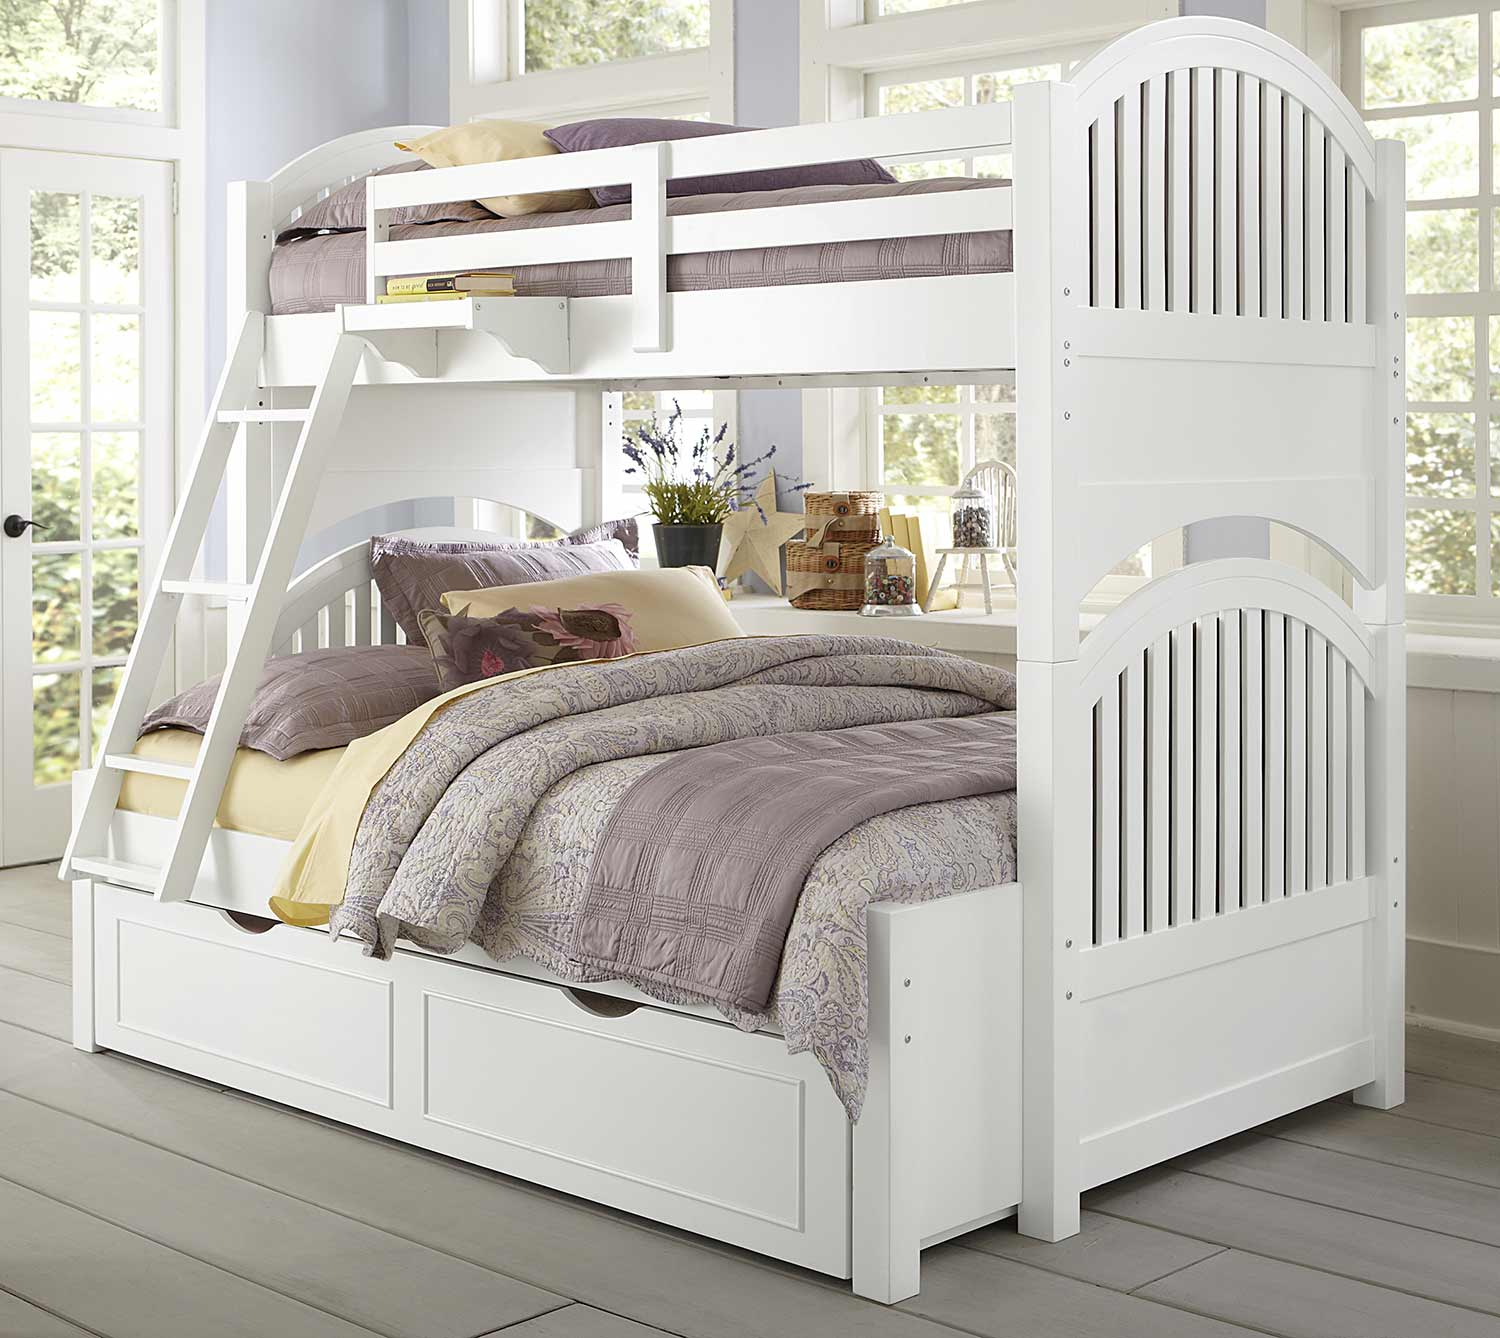 NE Kids Lake House Adrian Twin Over Full Bunk With Trundle - White